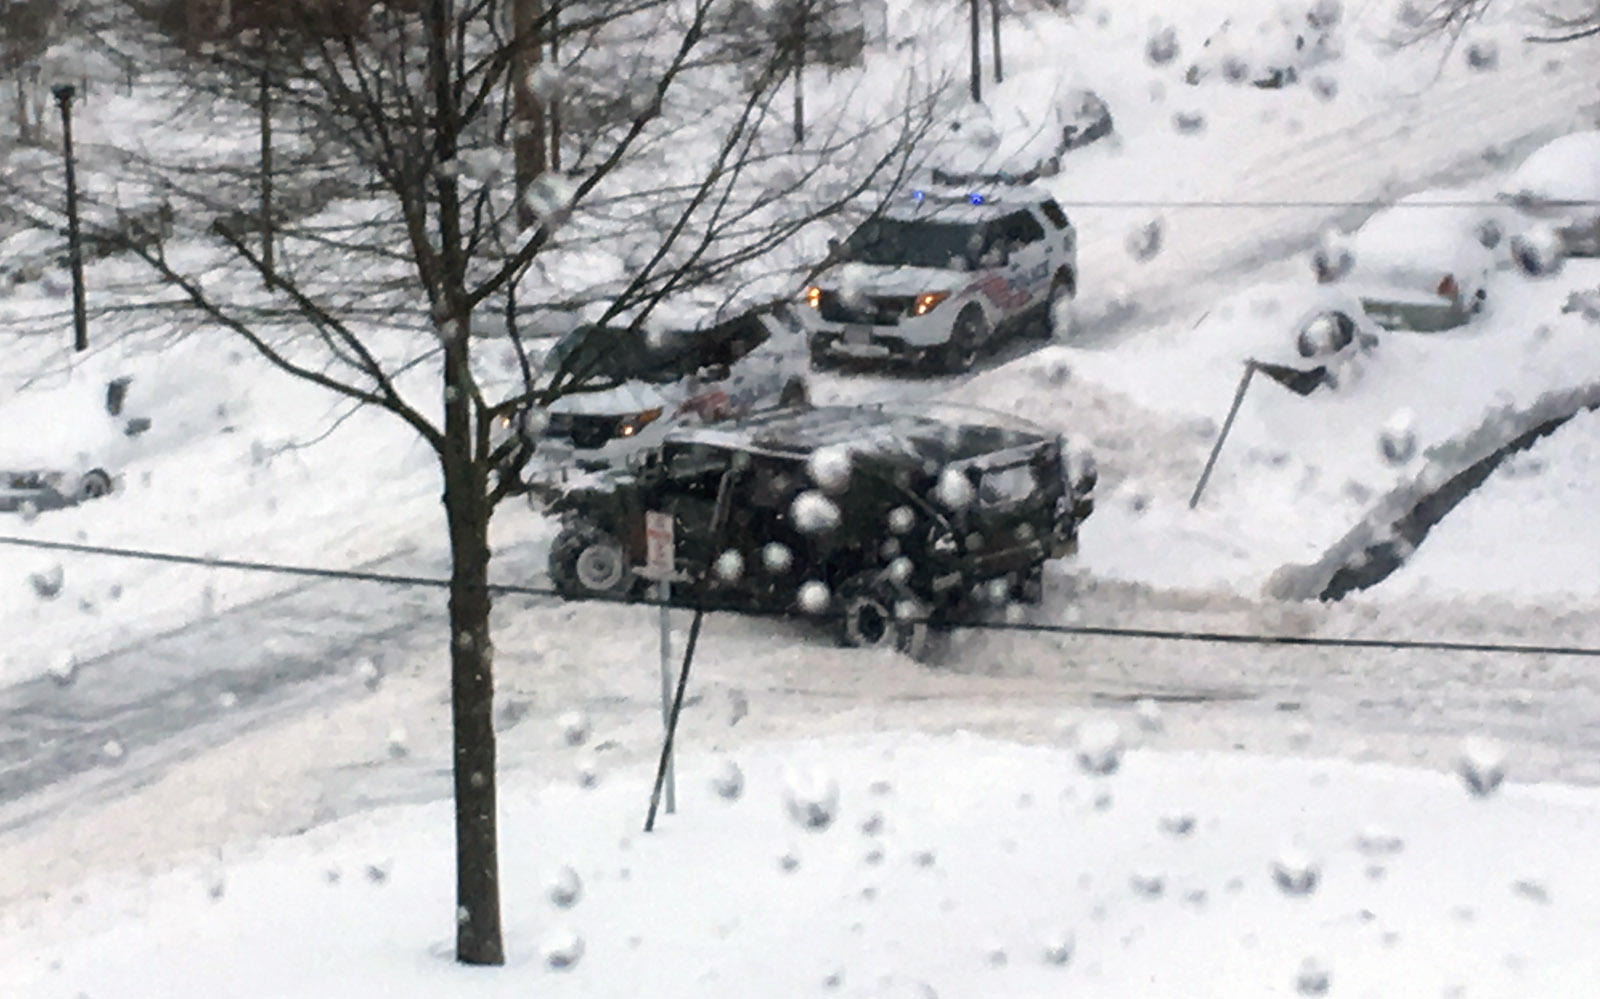 Storm still poses threat, cleanup to take days